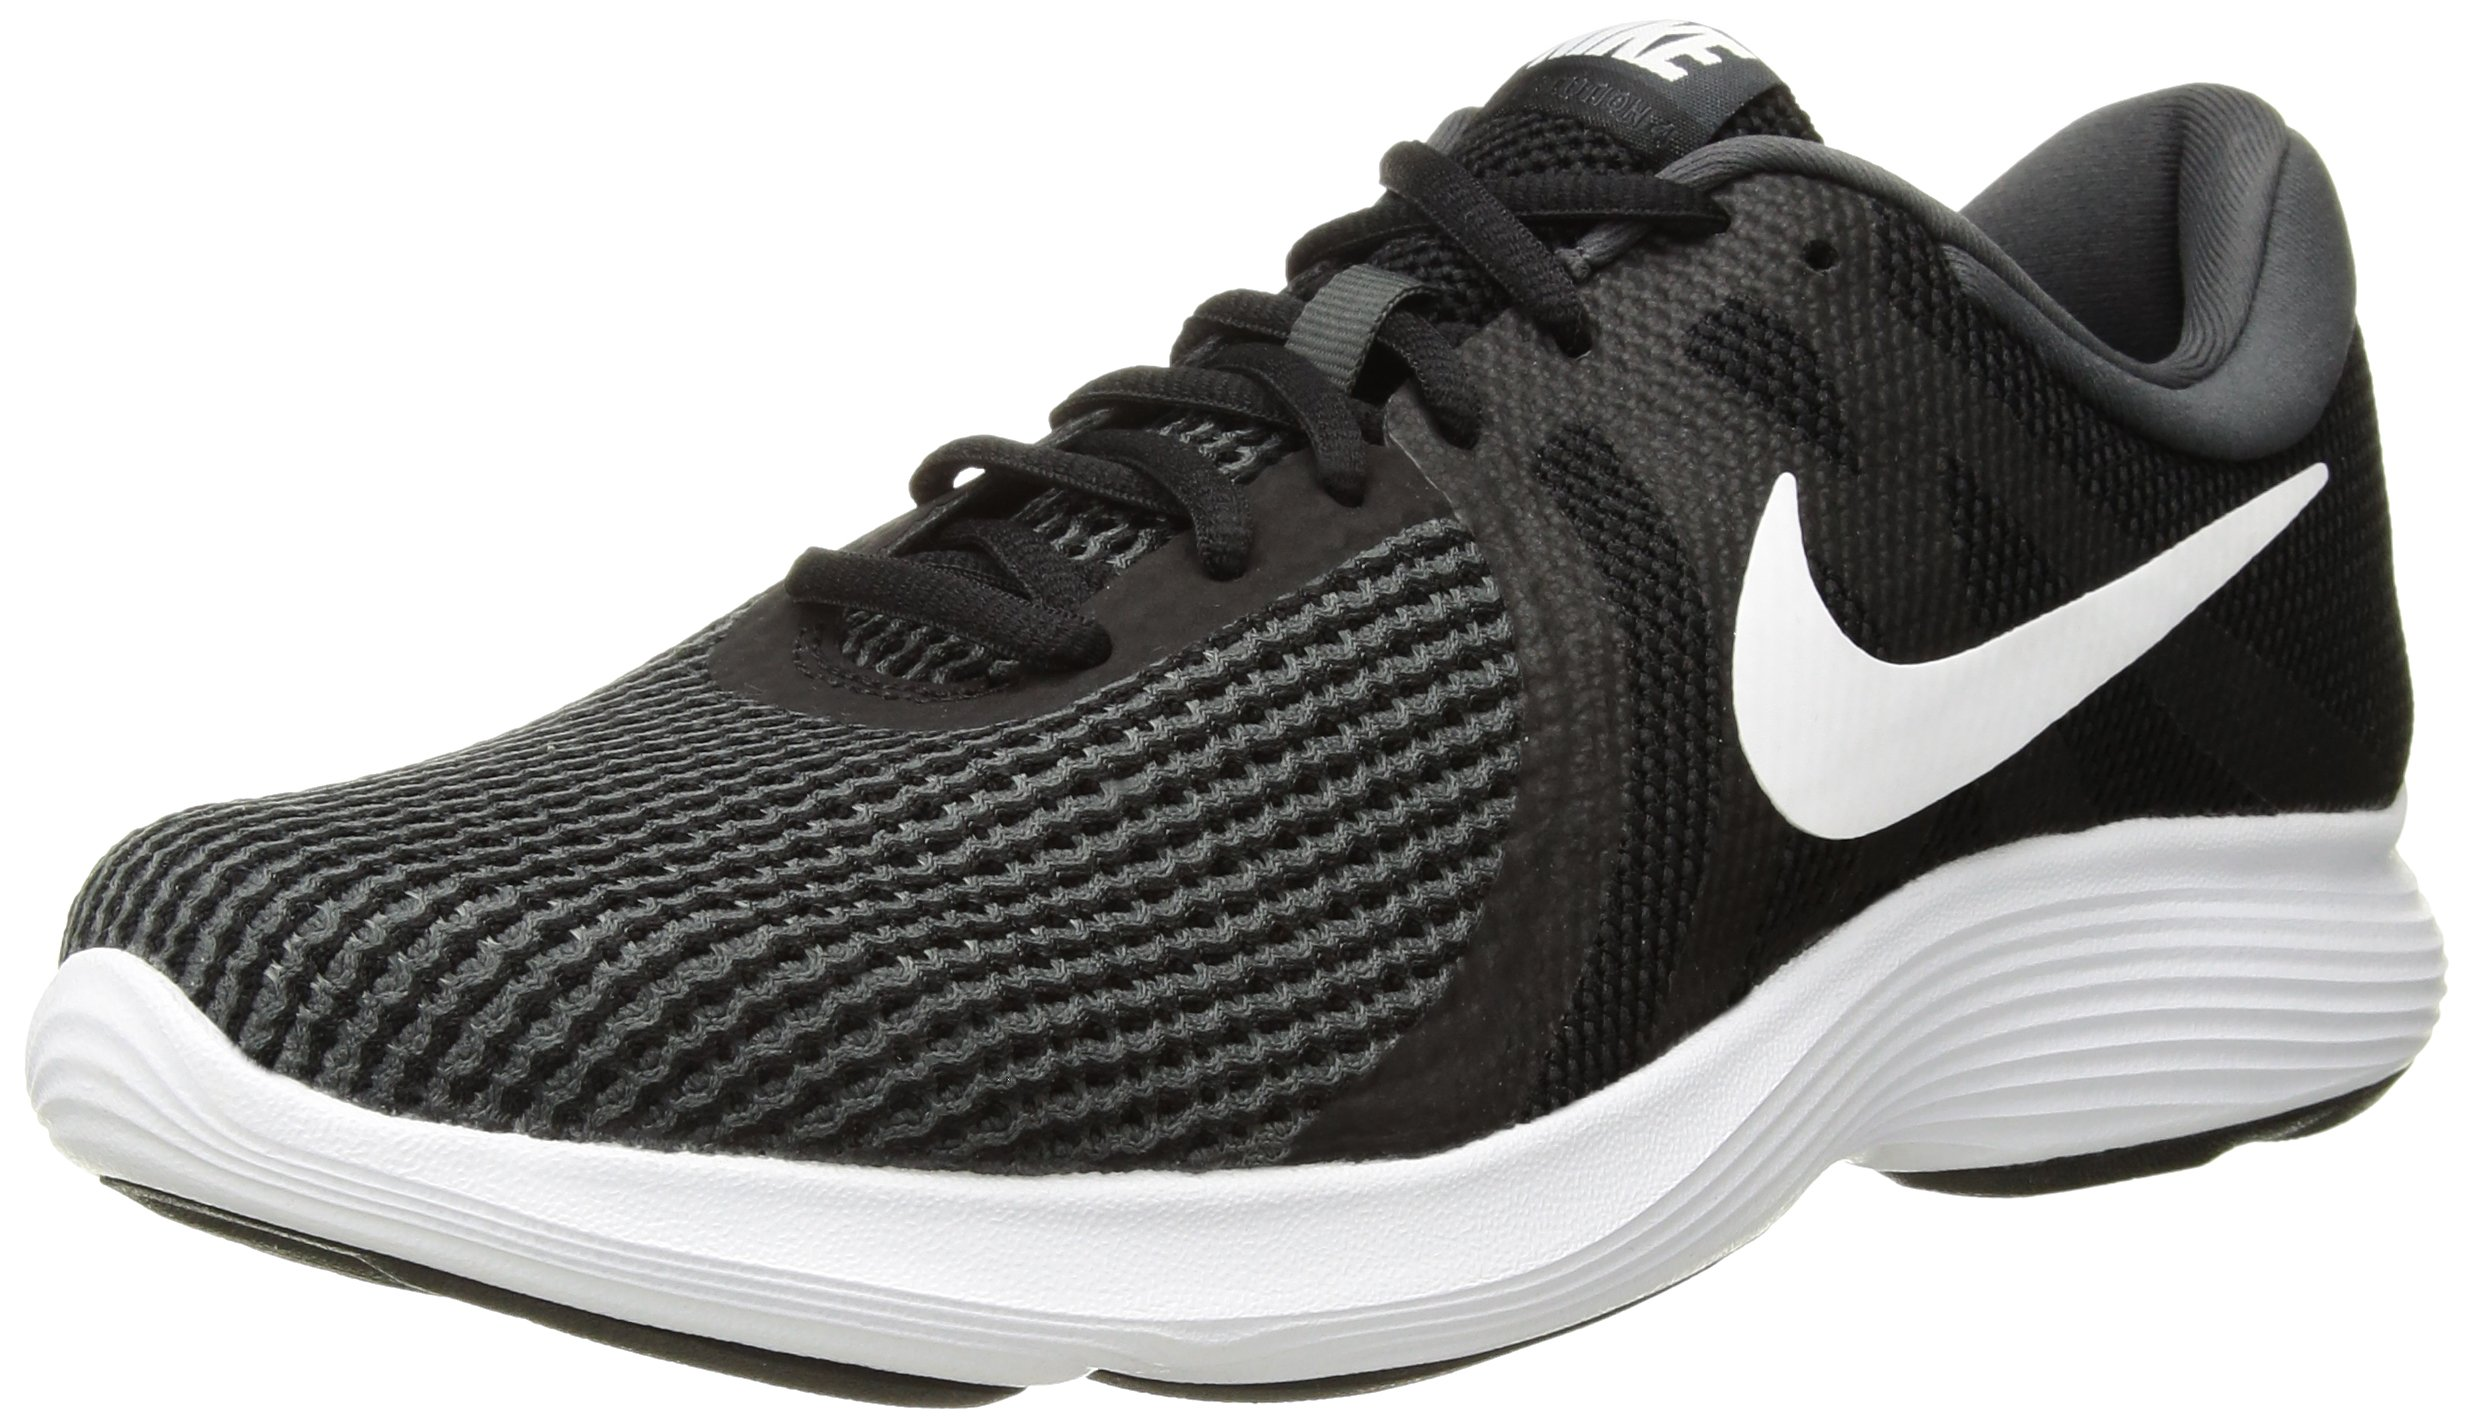 NIKE Women's Revolution 4 Running Shoe, Black/White-Anthracite, 5 Regular US